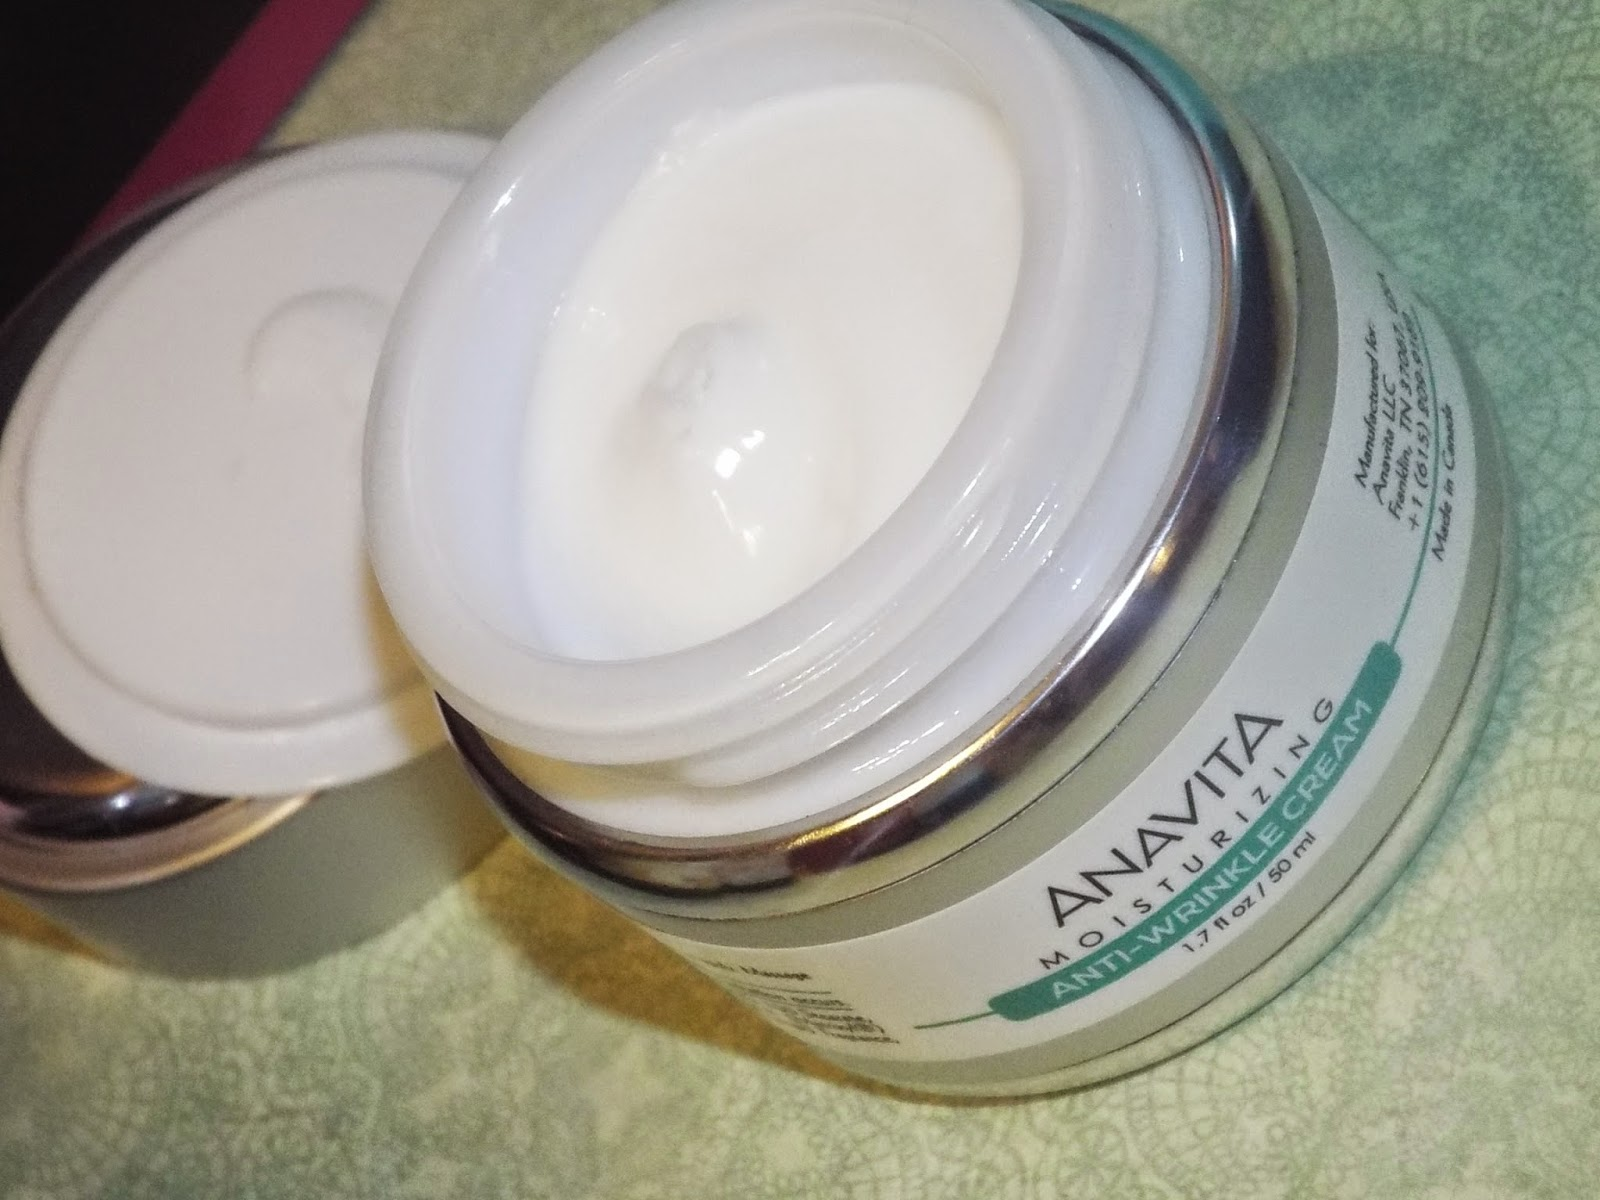 Anavita Moisturizer is Thick